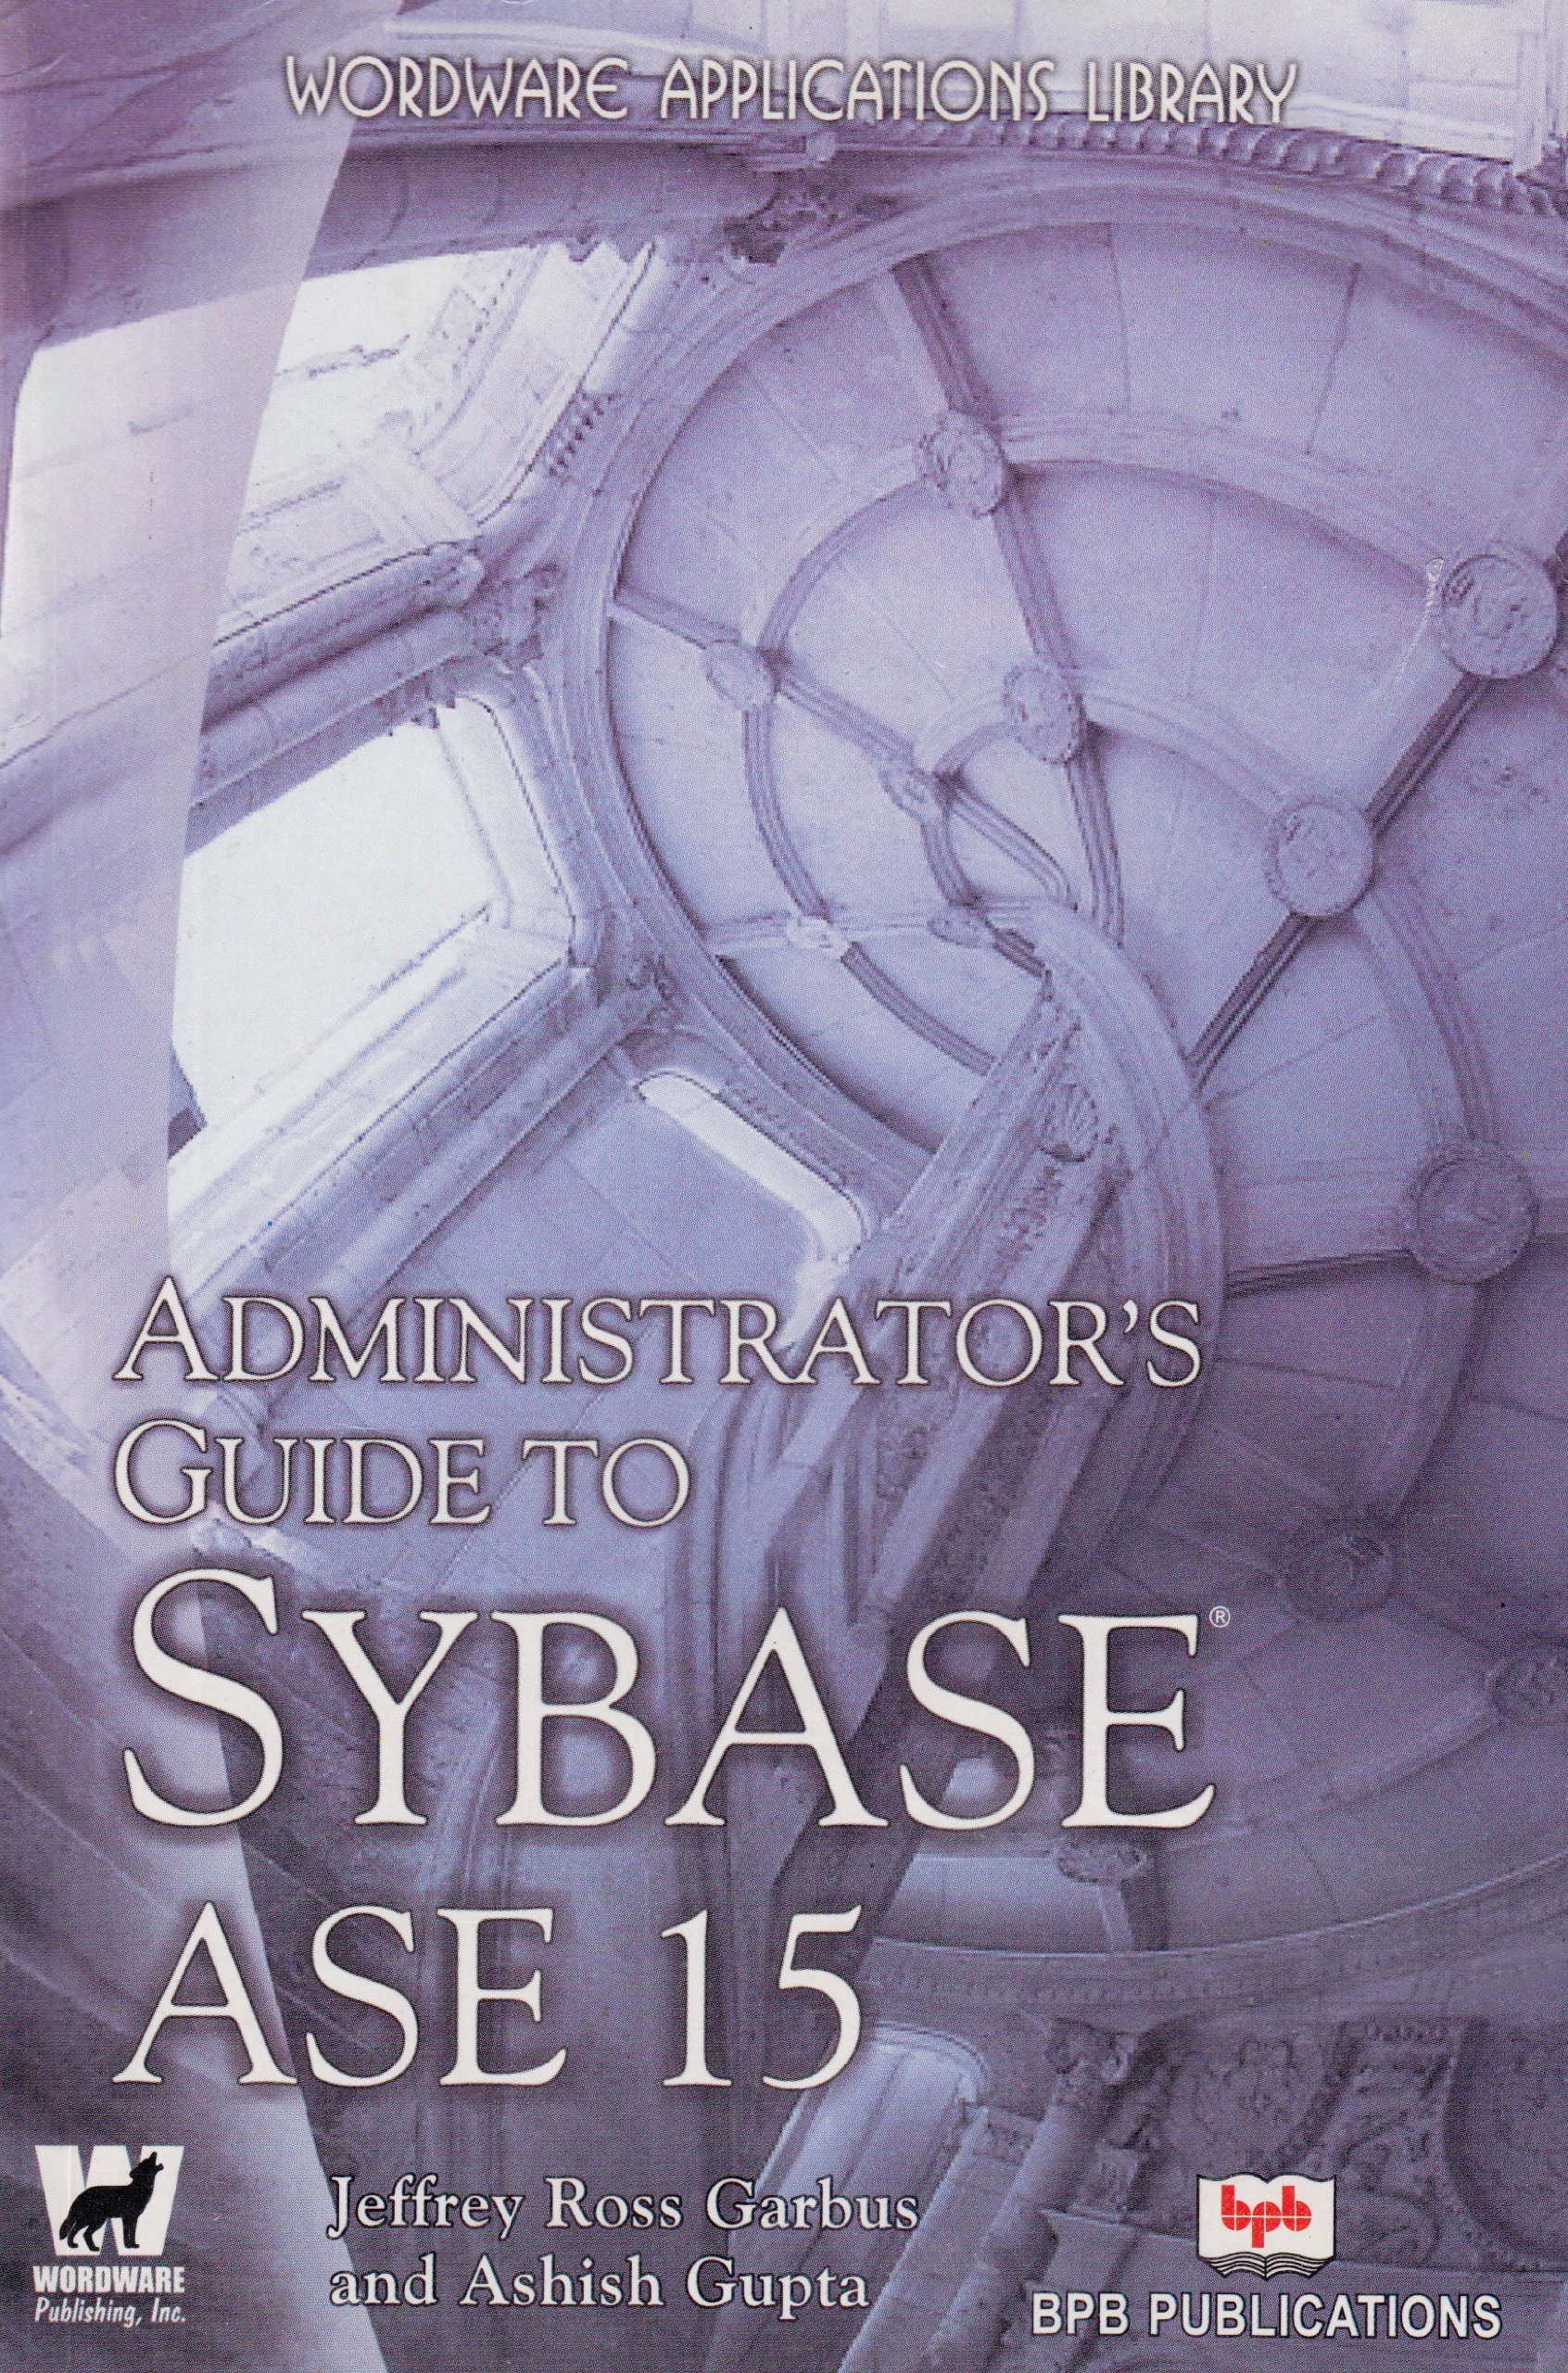 Buy Administrator's Guide to Sybase ASE 15 Book Online at Low Prices in  India   Administrator's Guide to Sybase ASE 15 Reviews & Ratings - Amazon.in